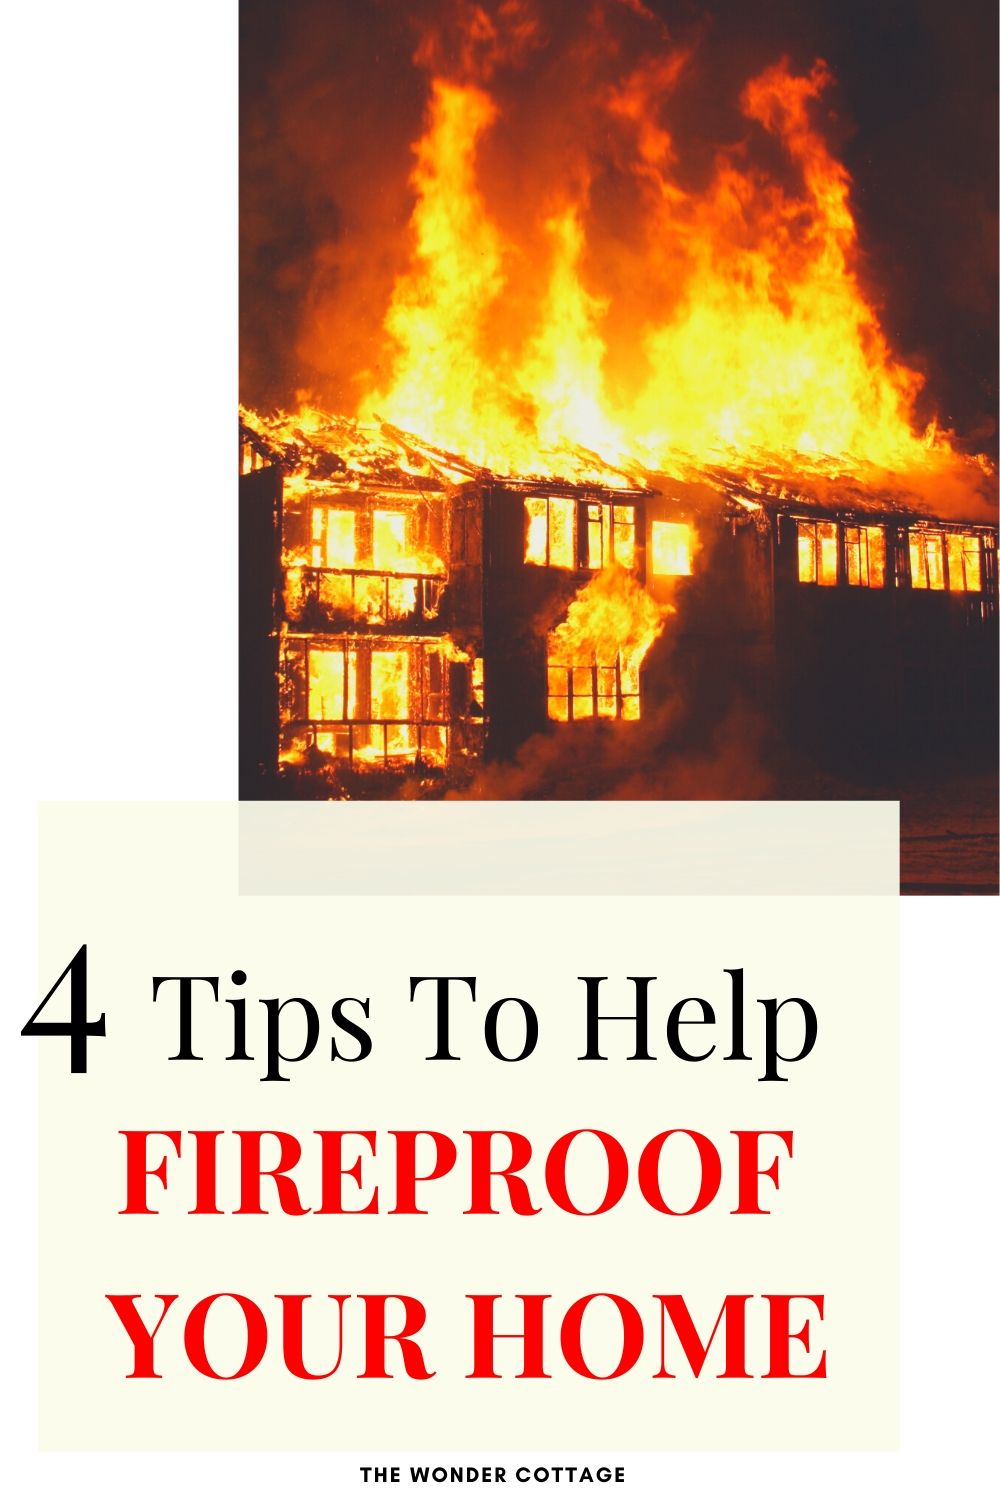 4 tips to help fireproof your home